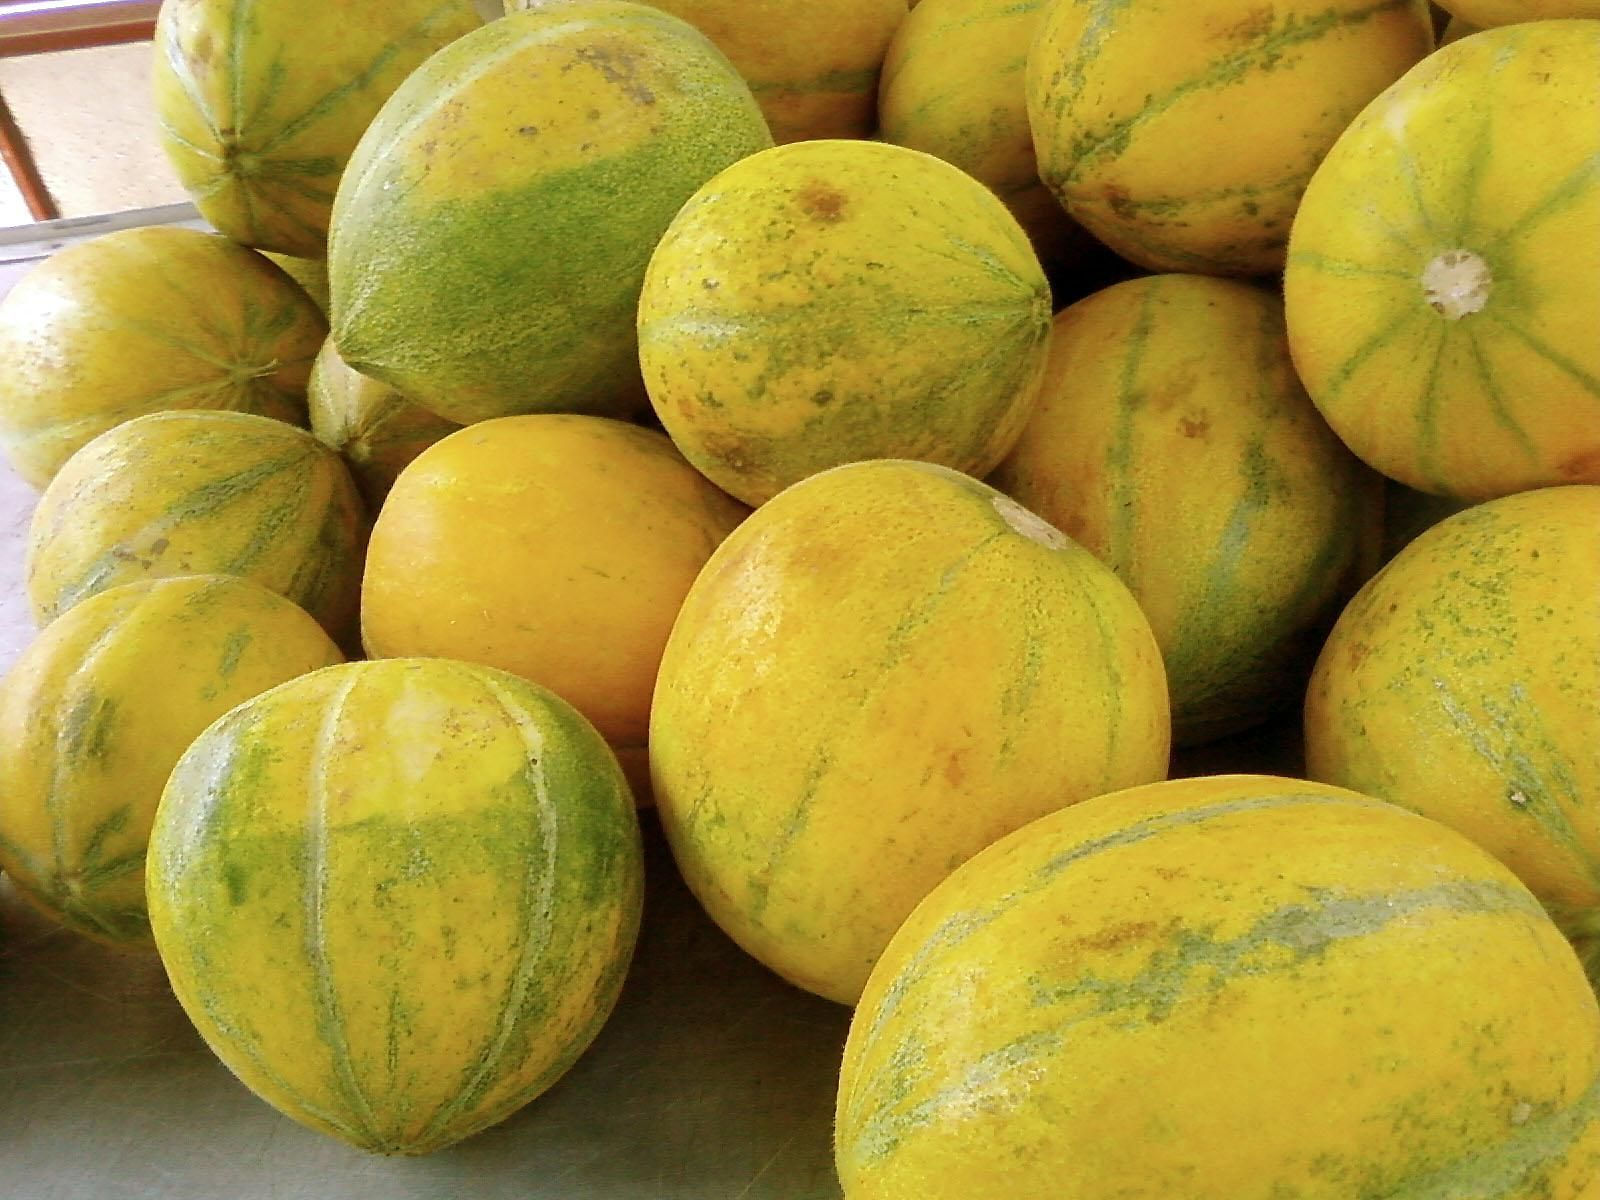 Yellow melons photo